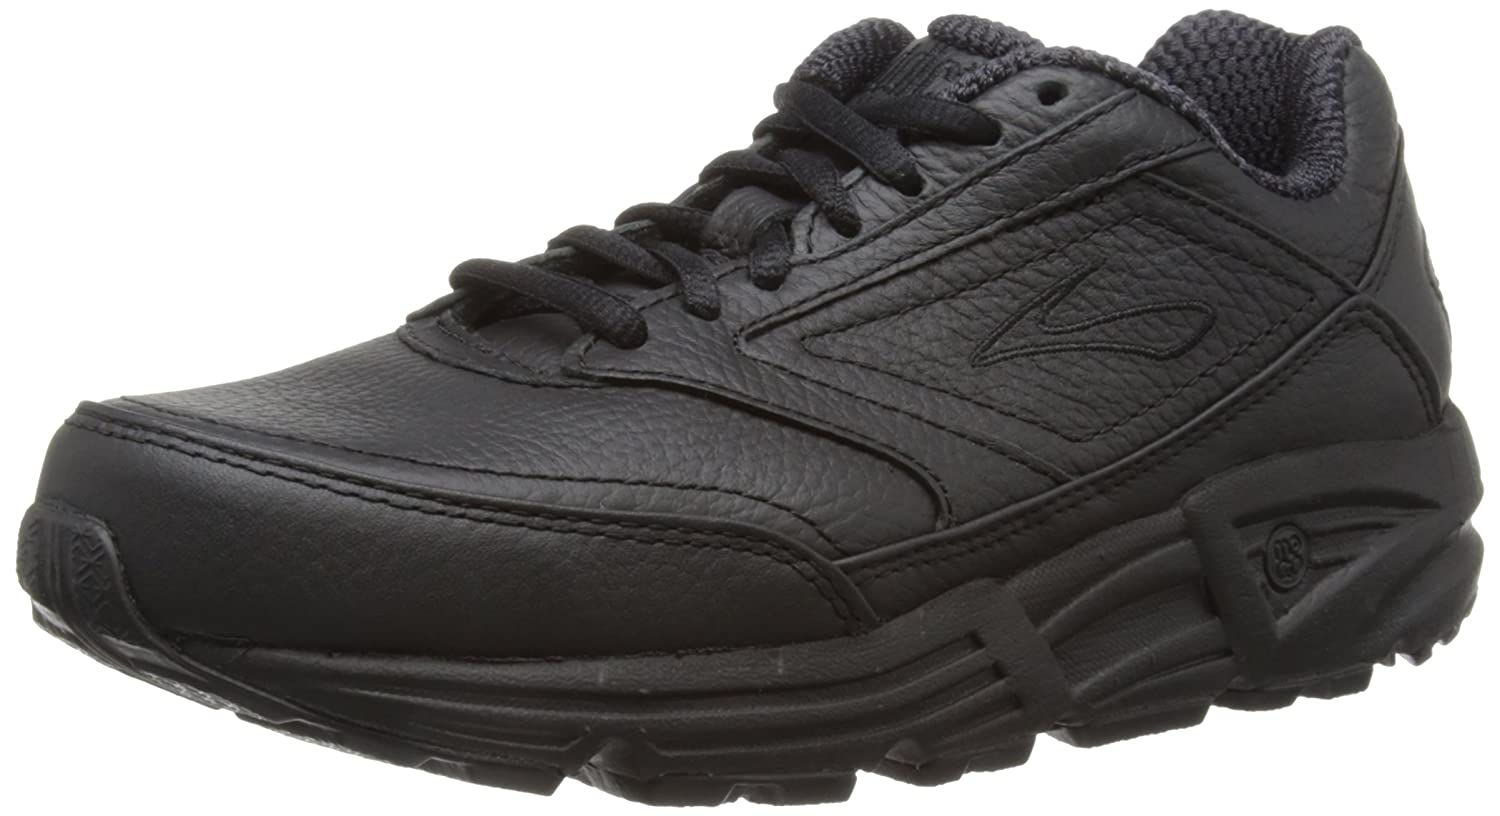 Brooks Women's Addiction Walker Walking Shoes B0012HT8ZI 5 AA|Black